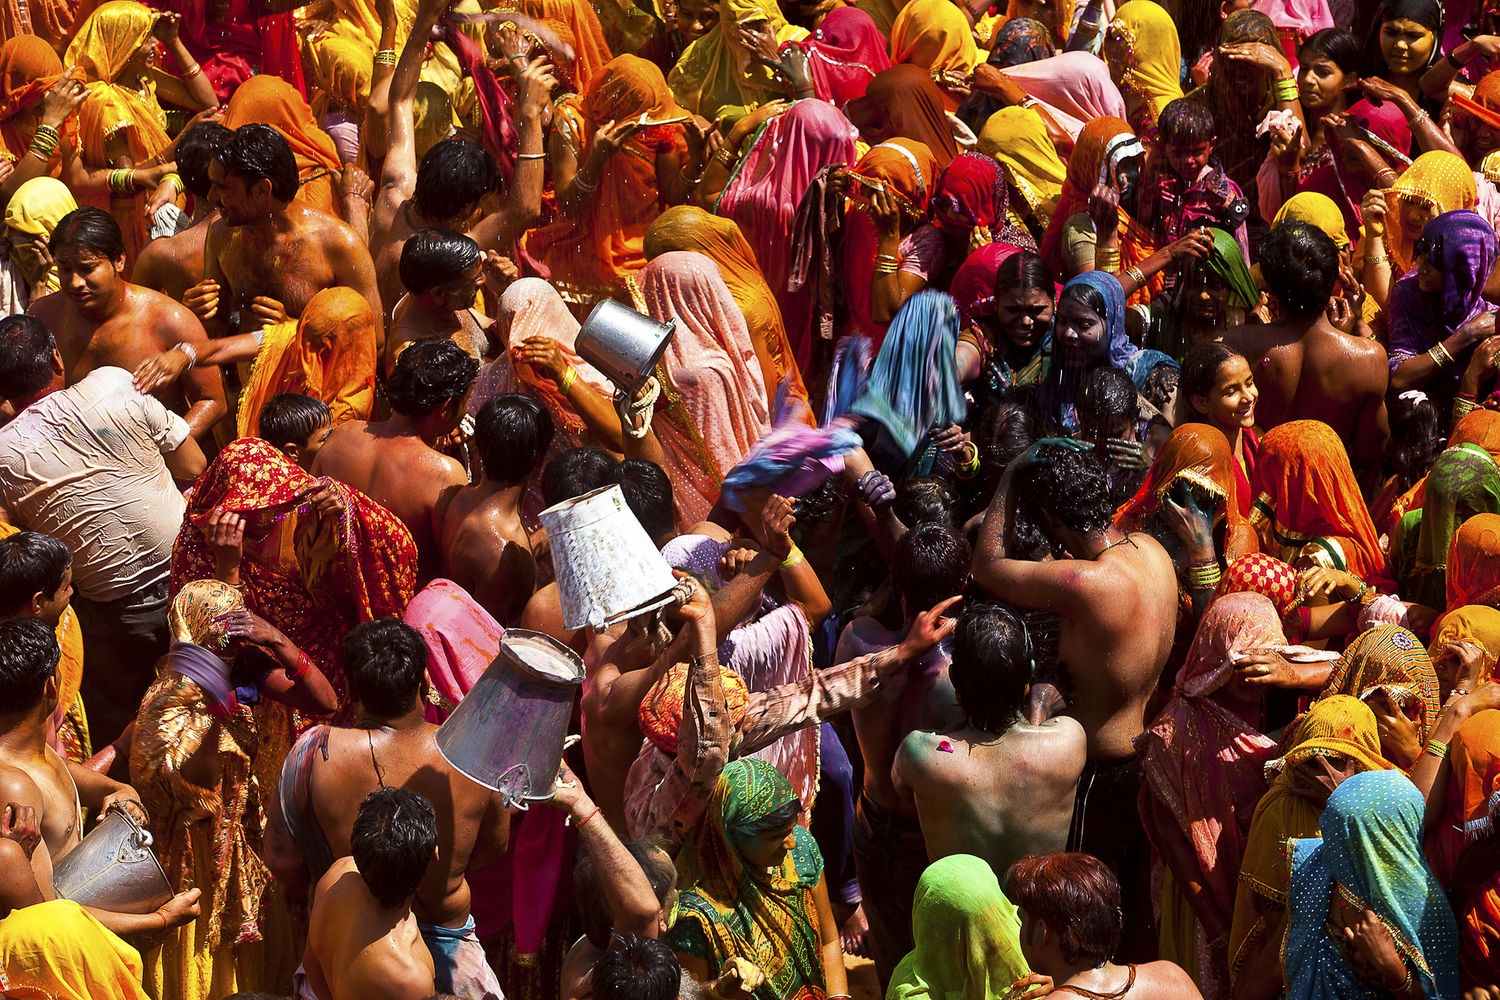 Indian pilgrims celebrate colours on the occasion of holi, festival of colours in Dauji village, in Mathura District, Uttar Pradesh India.